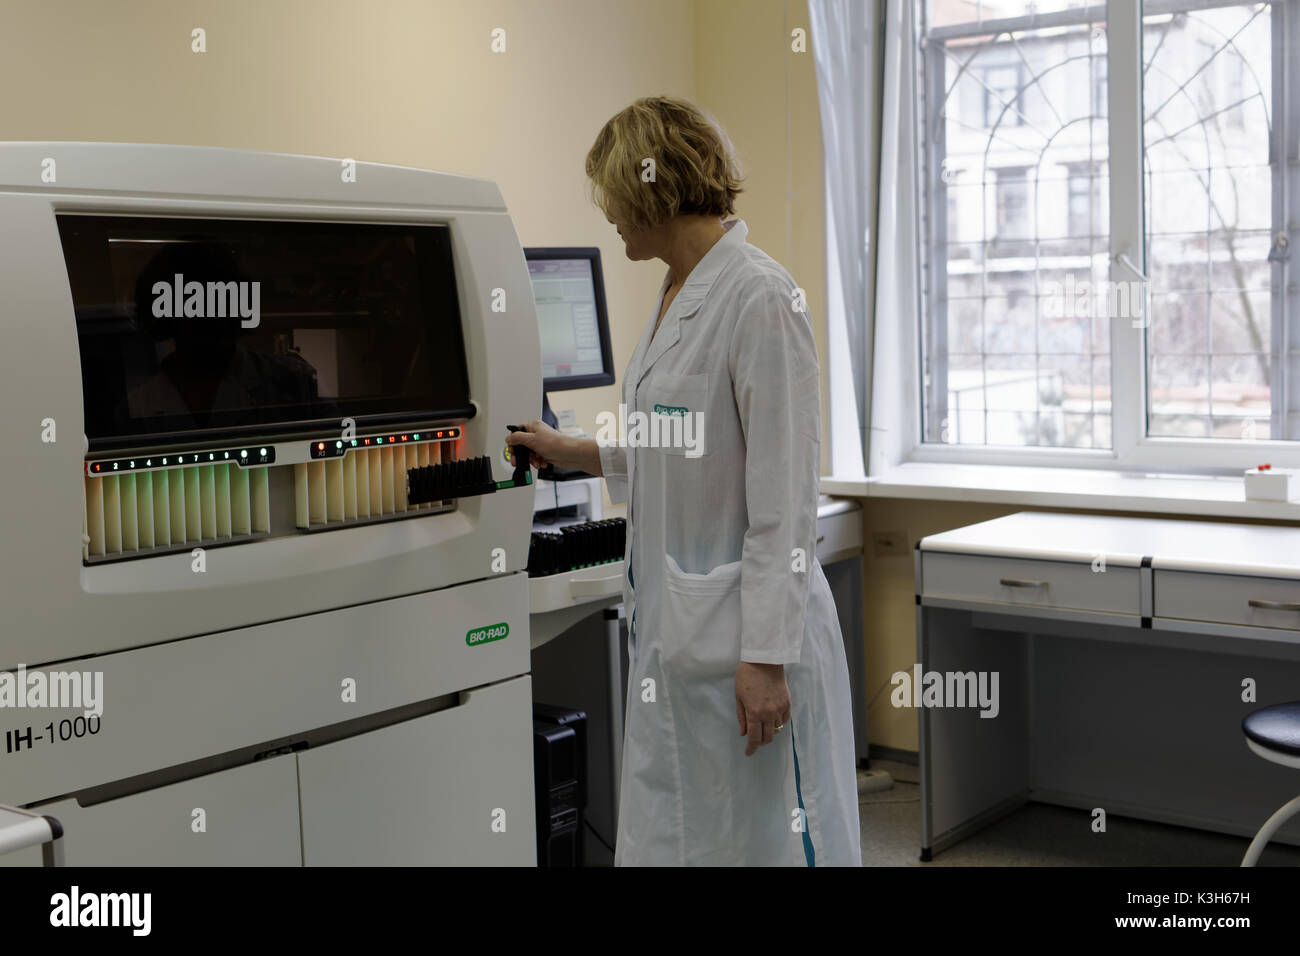 St. Petersburg, Russia - February 20, 2017: Laboratory analyst load the blood samples into the fully automated system for ID-cards in the city blood t - Stock Image